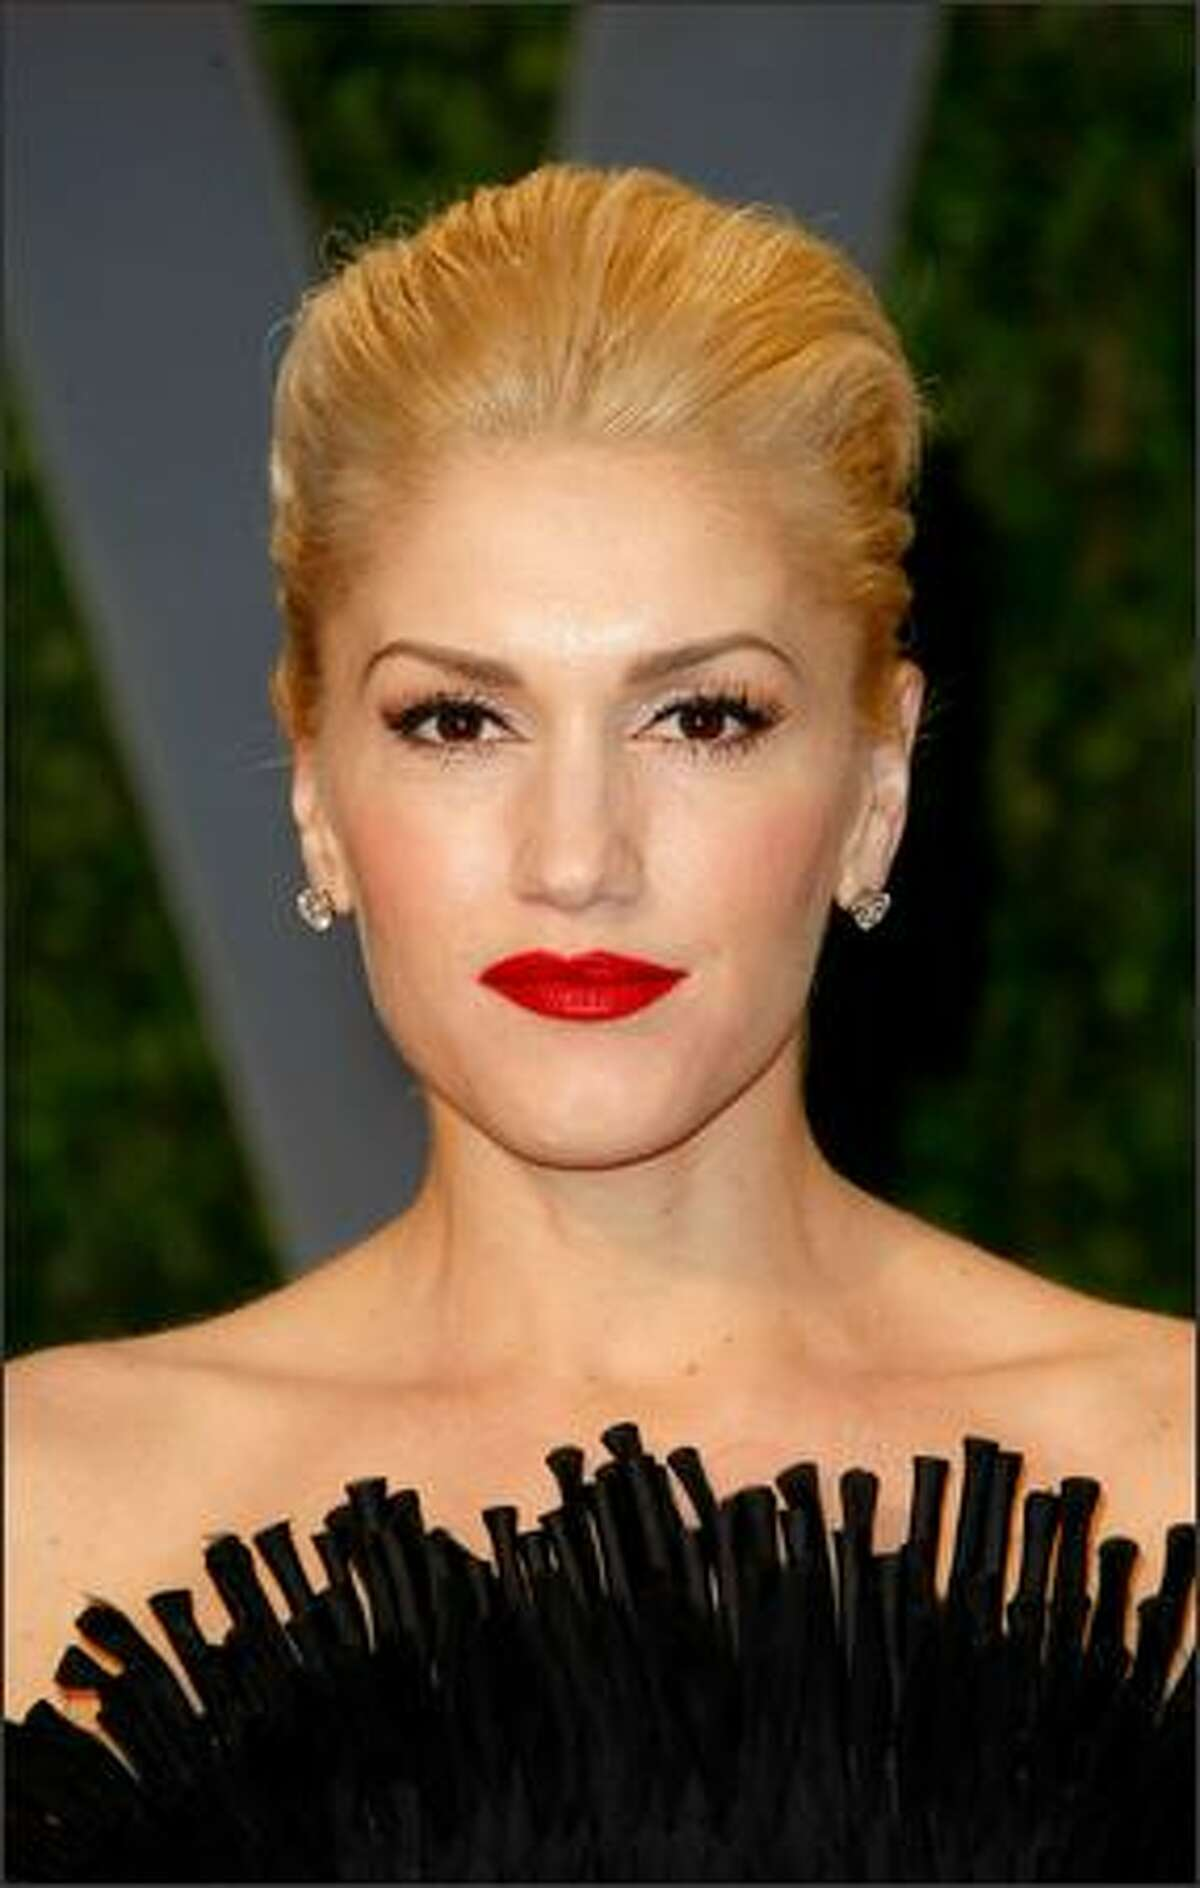 Singer Gwen Stefani arrives at the Vanity Fair Oscar party.